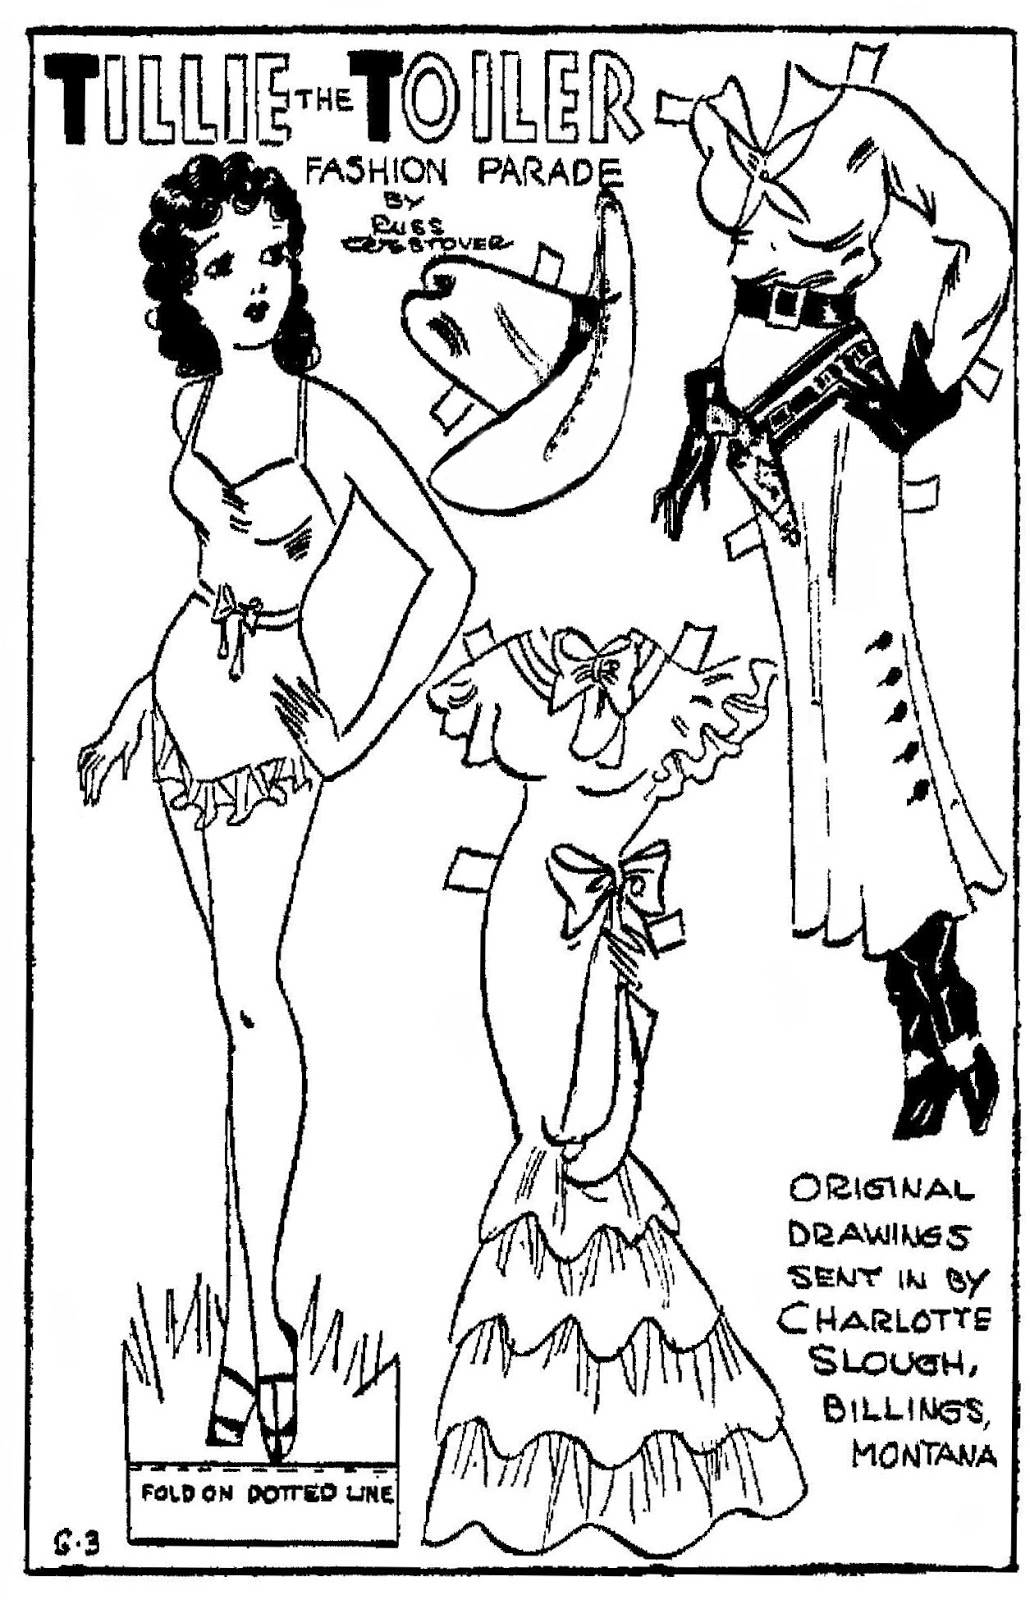 Mostly Paper Dolls Too!: More 1934 Tillie the Toiler Paper